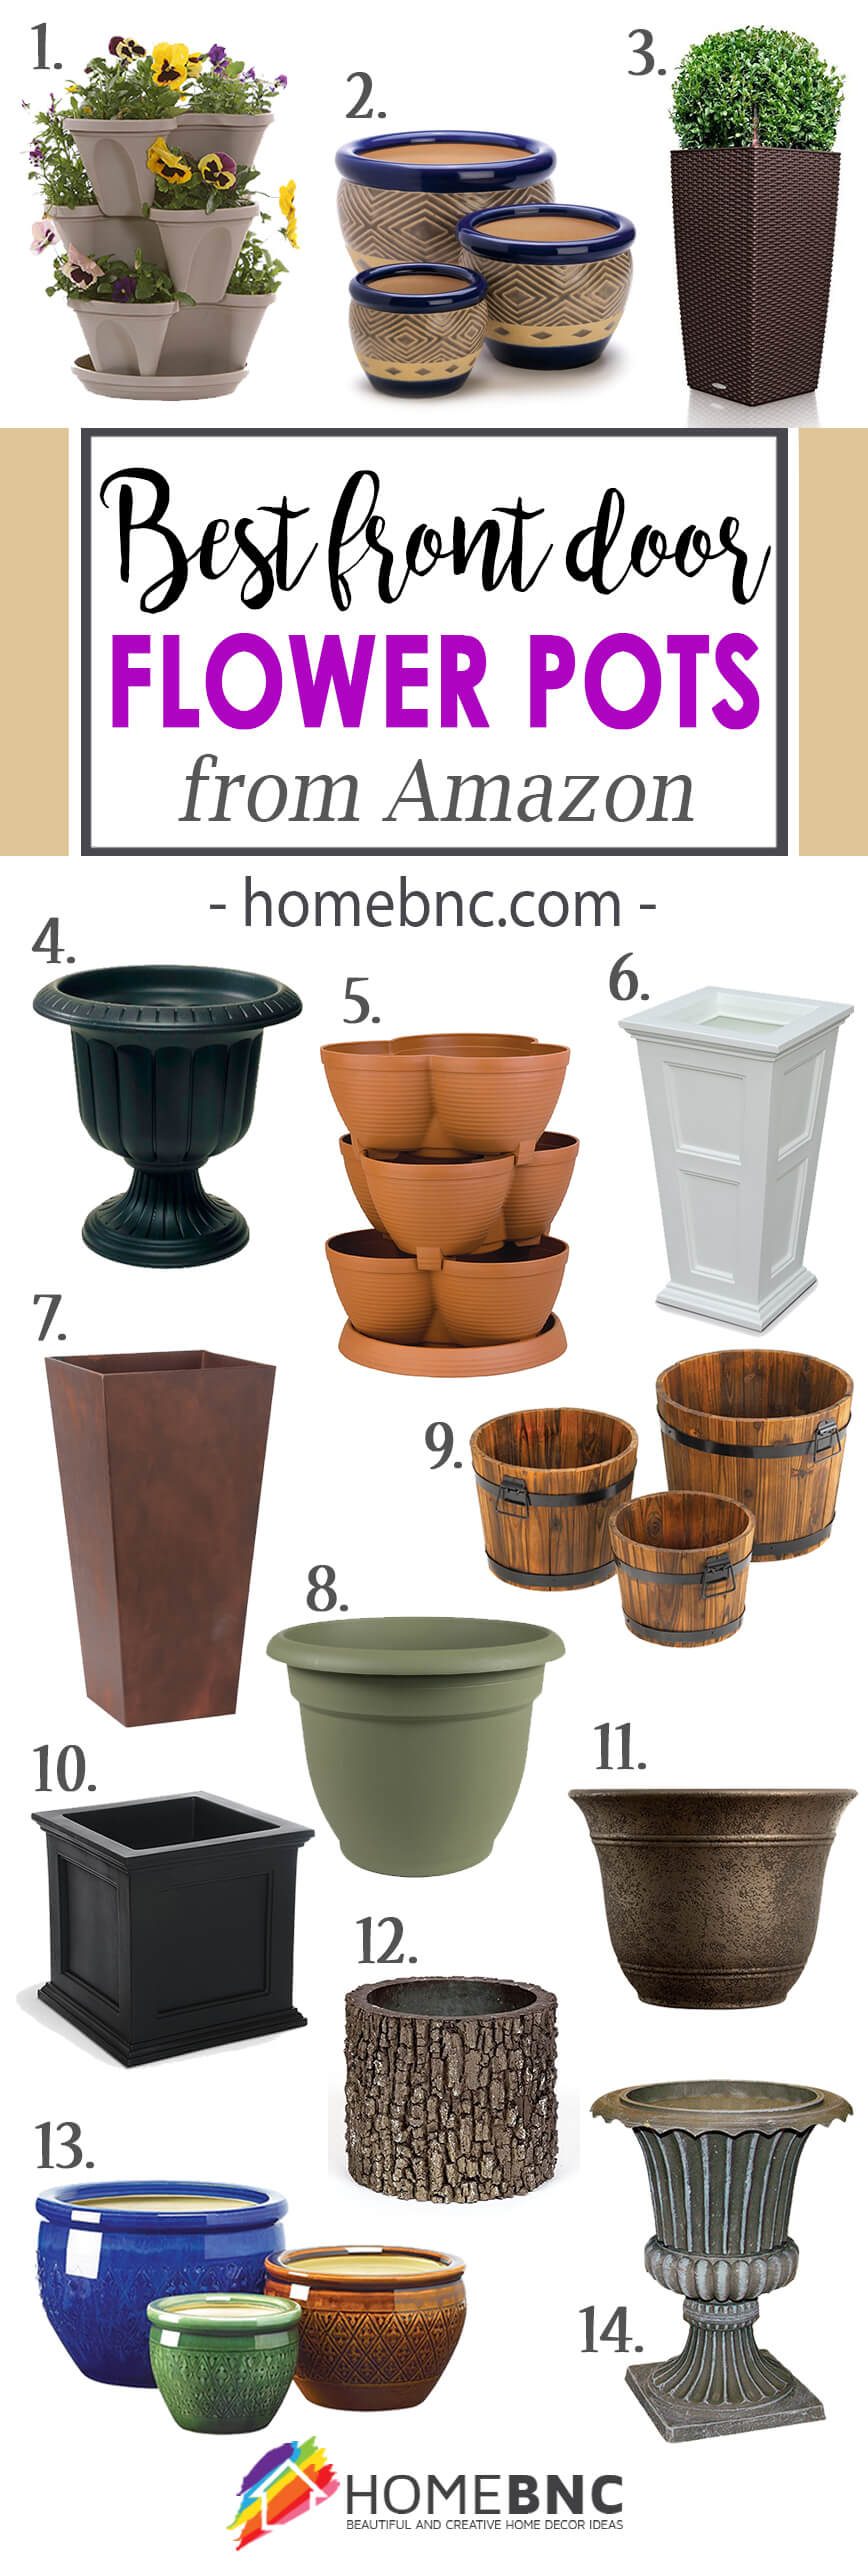 Best Flower Pots from Amazon